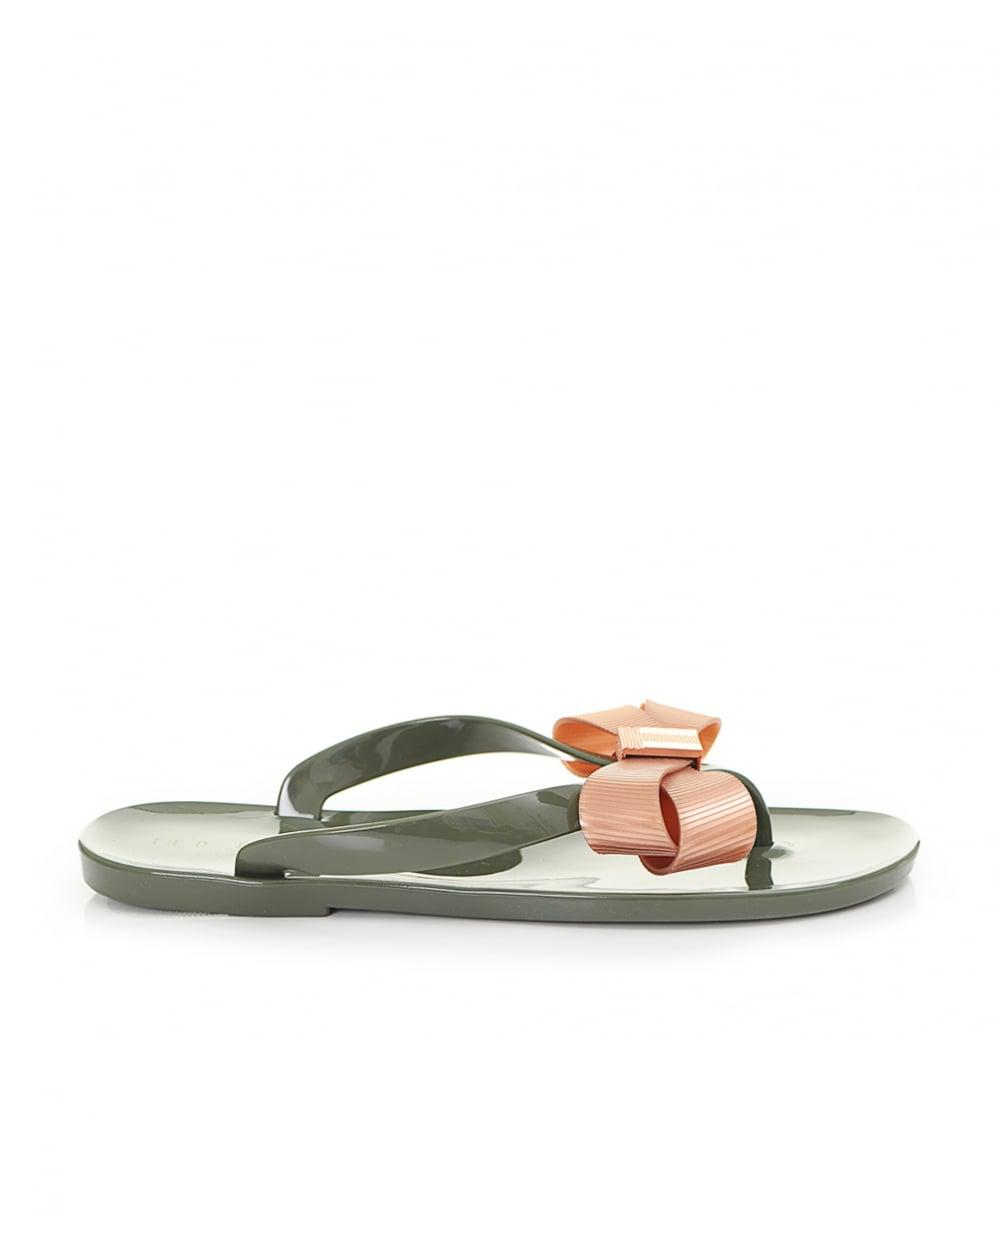 66b7a142fc1b Lyst - Ted Baker Bow Front Jelly Flip Flops in Green